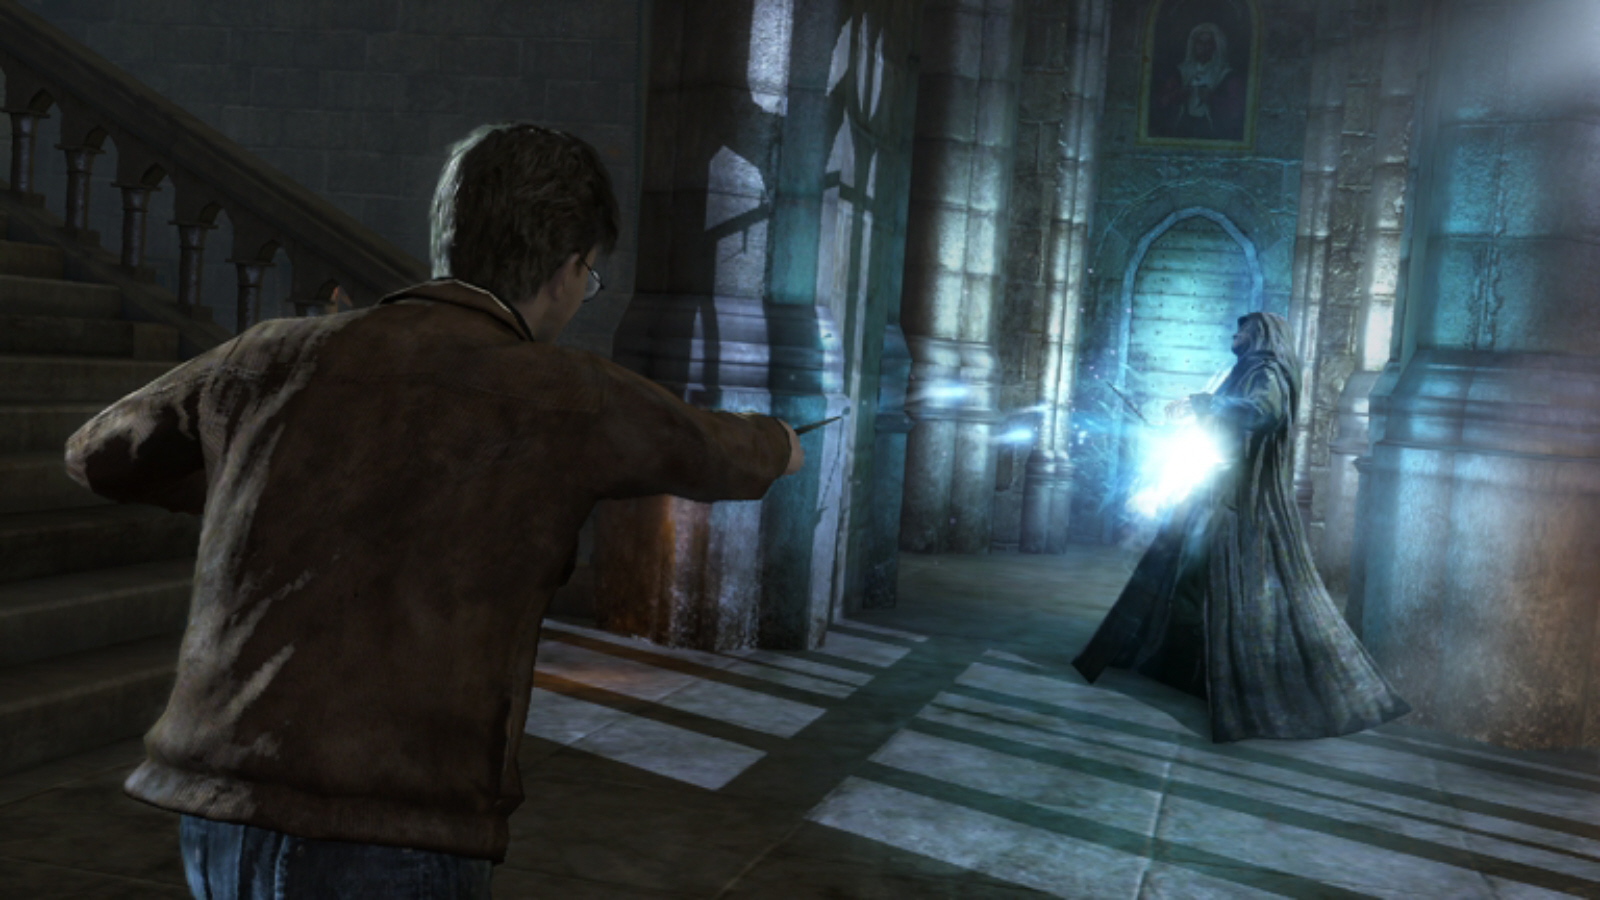 Harry potter deathly hallows part 2 game cheats wii live gaming on windows failed to initialize halo 2 windows 7